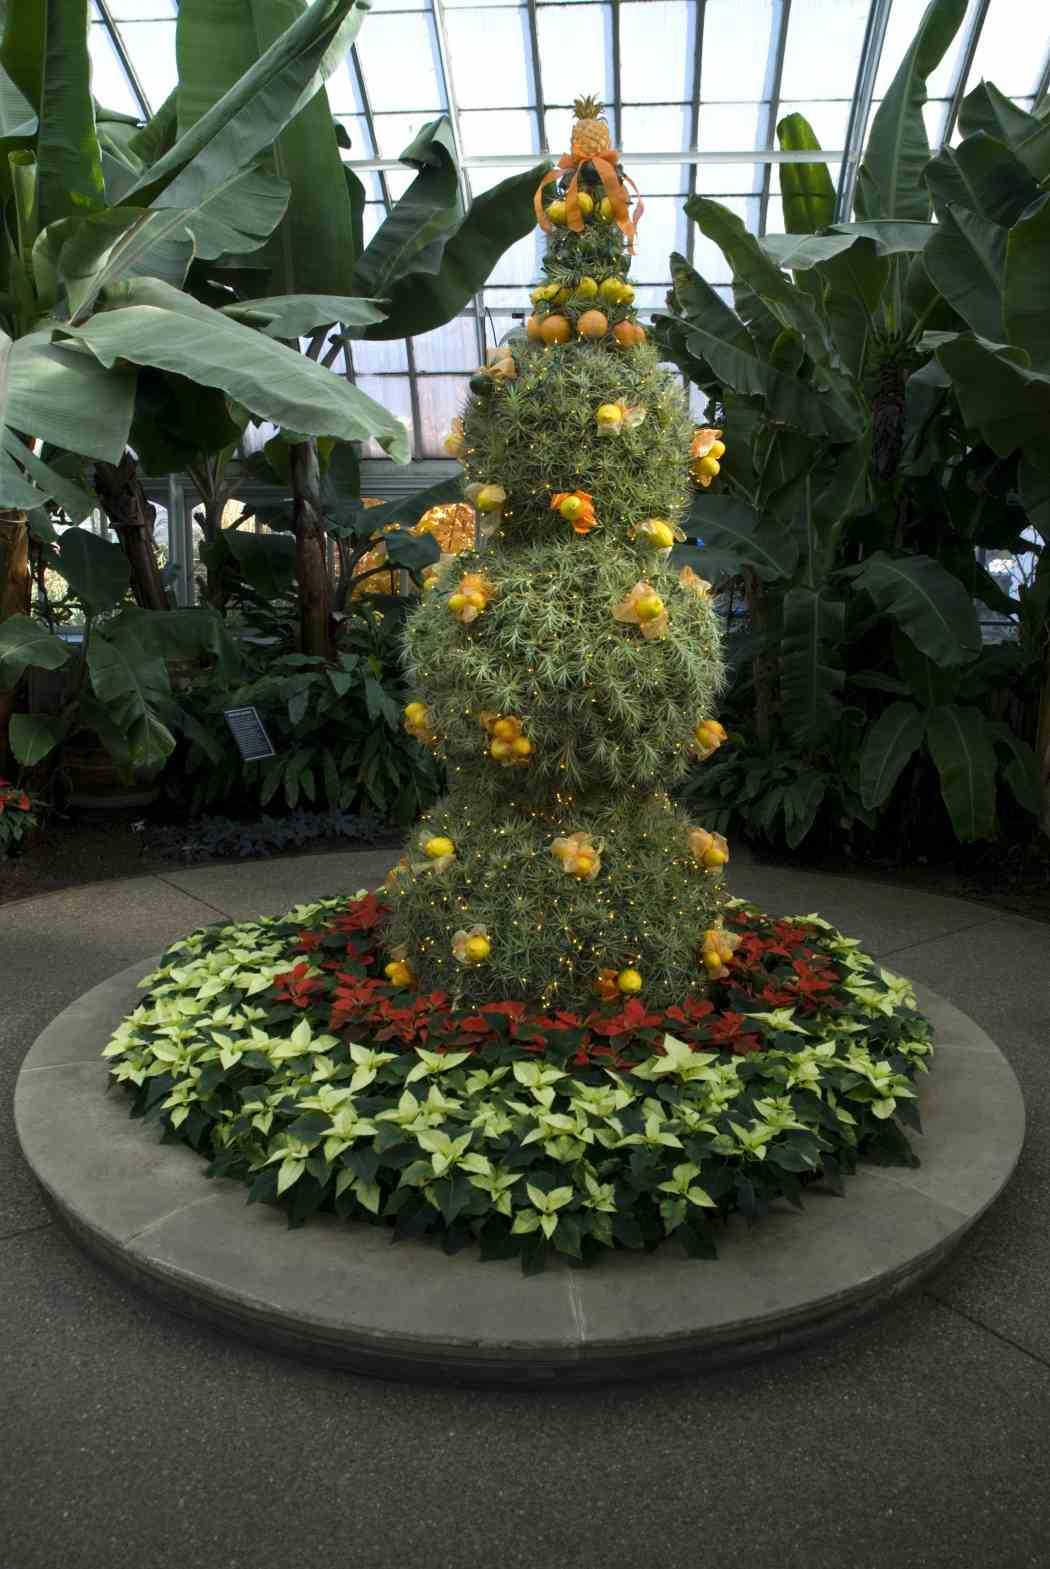 Winter Flower Show 2006: Shades of the Season